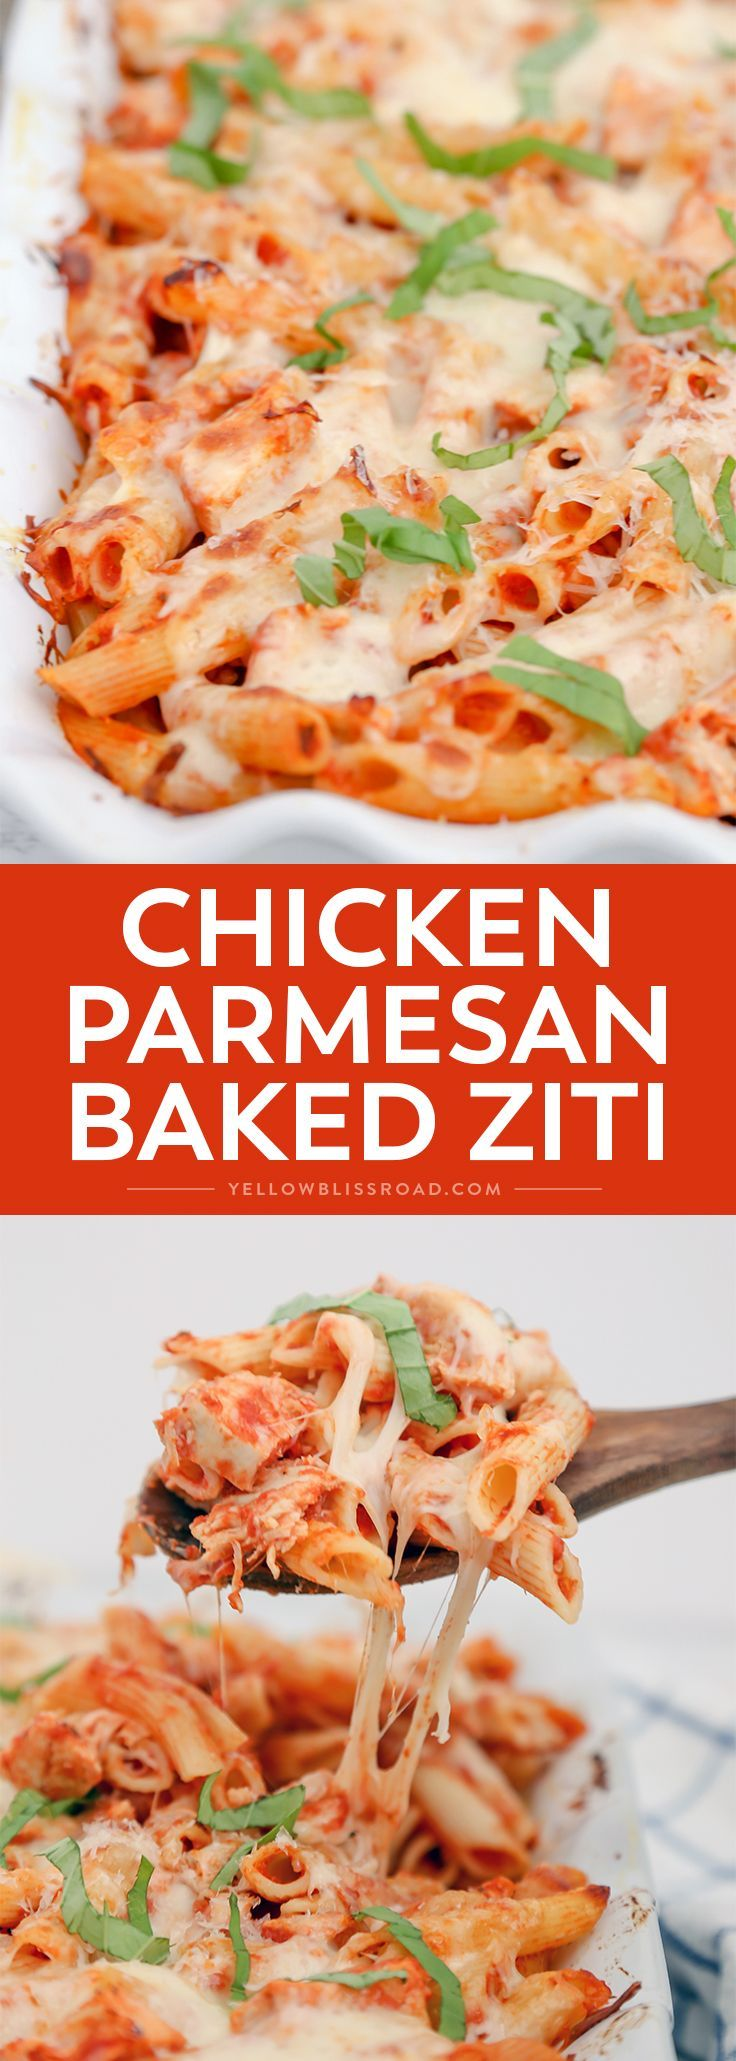 This Chicken Parmesan Baked Ziti is a quick and easy meal to whip up on a busy weeknight, and still classy enough for Sunday dinner. (Italian Recipes Ziti)